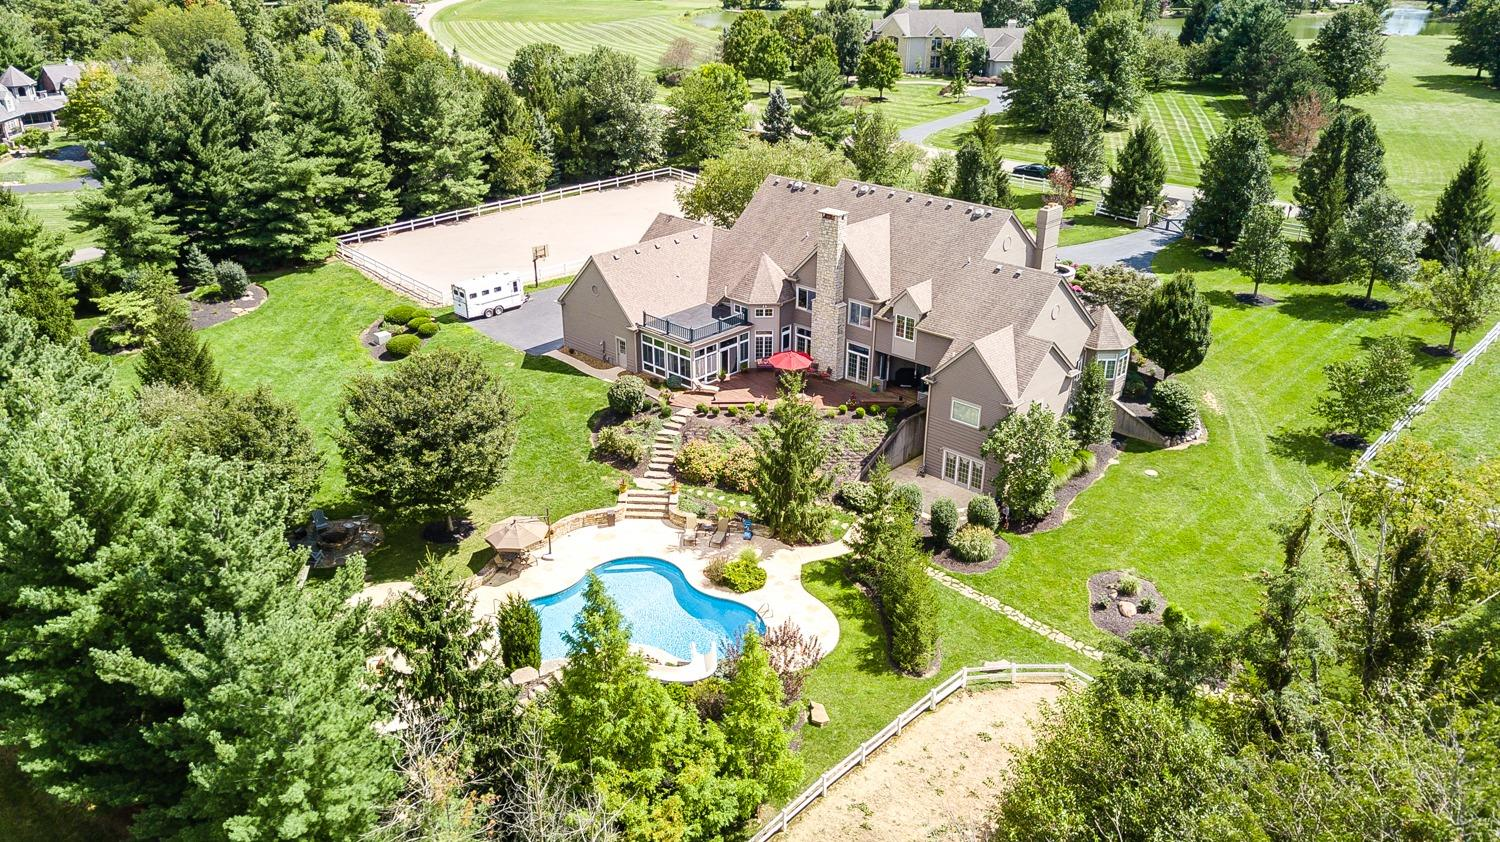 A rare opportunity! Enjoy 5+ acres w/benefits of a neighborhd! 6 BR/6+baths, lg kit w/bkfst rm, 16x21 scr porch, 1st flr mstr suite w/sitting rm, 2nd flr w/4+ BR, fully fin w/o LL w/rec rm, media rm, bar, exer rm. Vacation @home w/heated saltwater pool paradise. Rm for your horses w/barn/pasture/riding arena!     Fully fenced w/electric gated ent